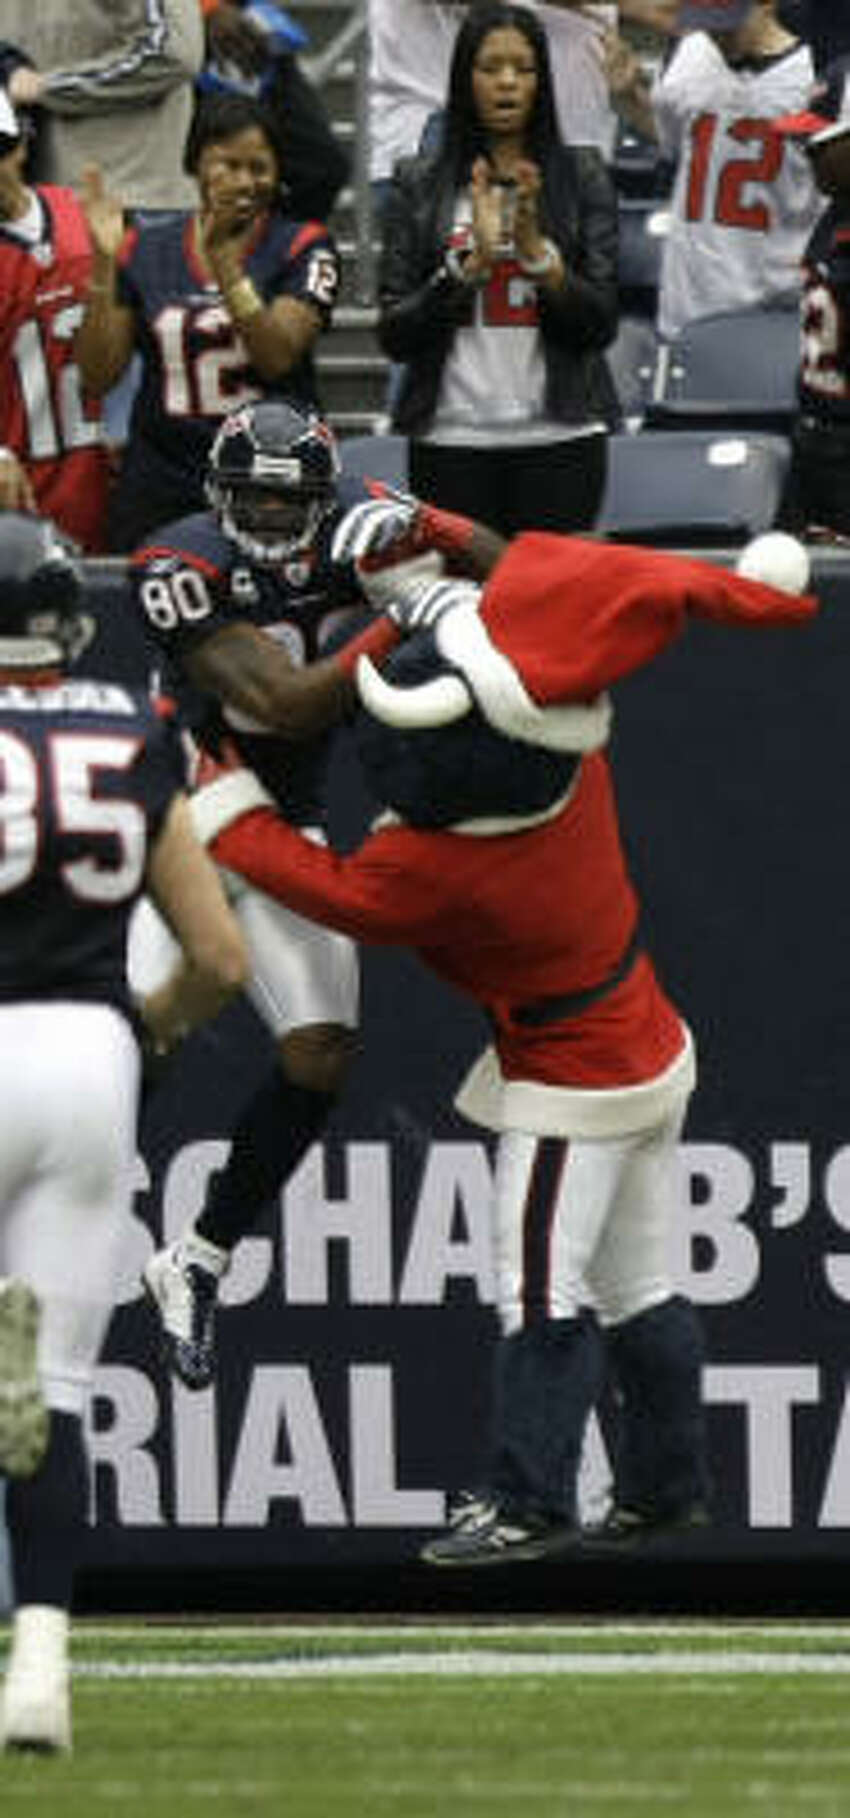 Texans wide receiver Andre Johnson leaps into the arms of Texans mascot Toro after his 64-yard touchdown reception from Matt Schaub on the opening play of the game.